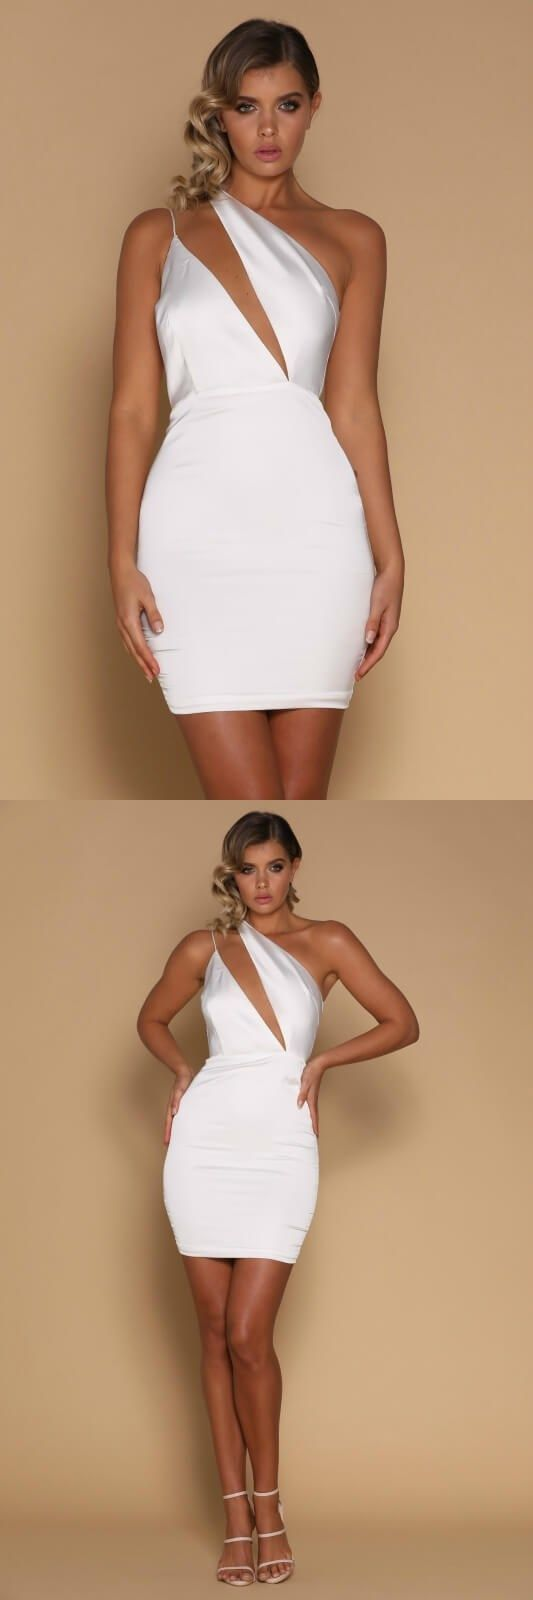 White short mermaid prom dress sexy white homecoming dress sexy